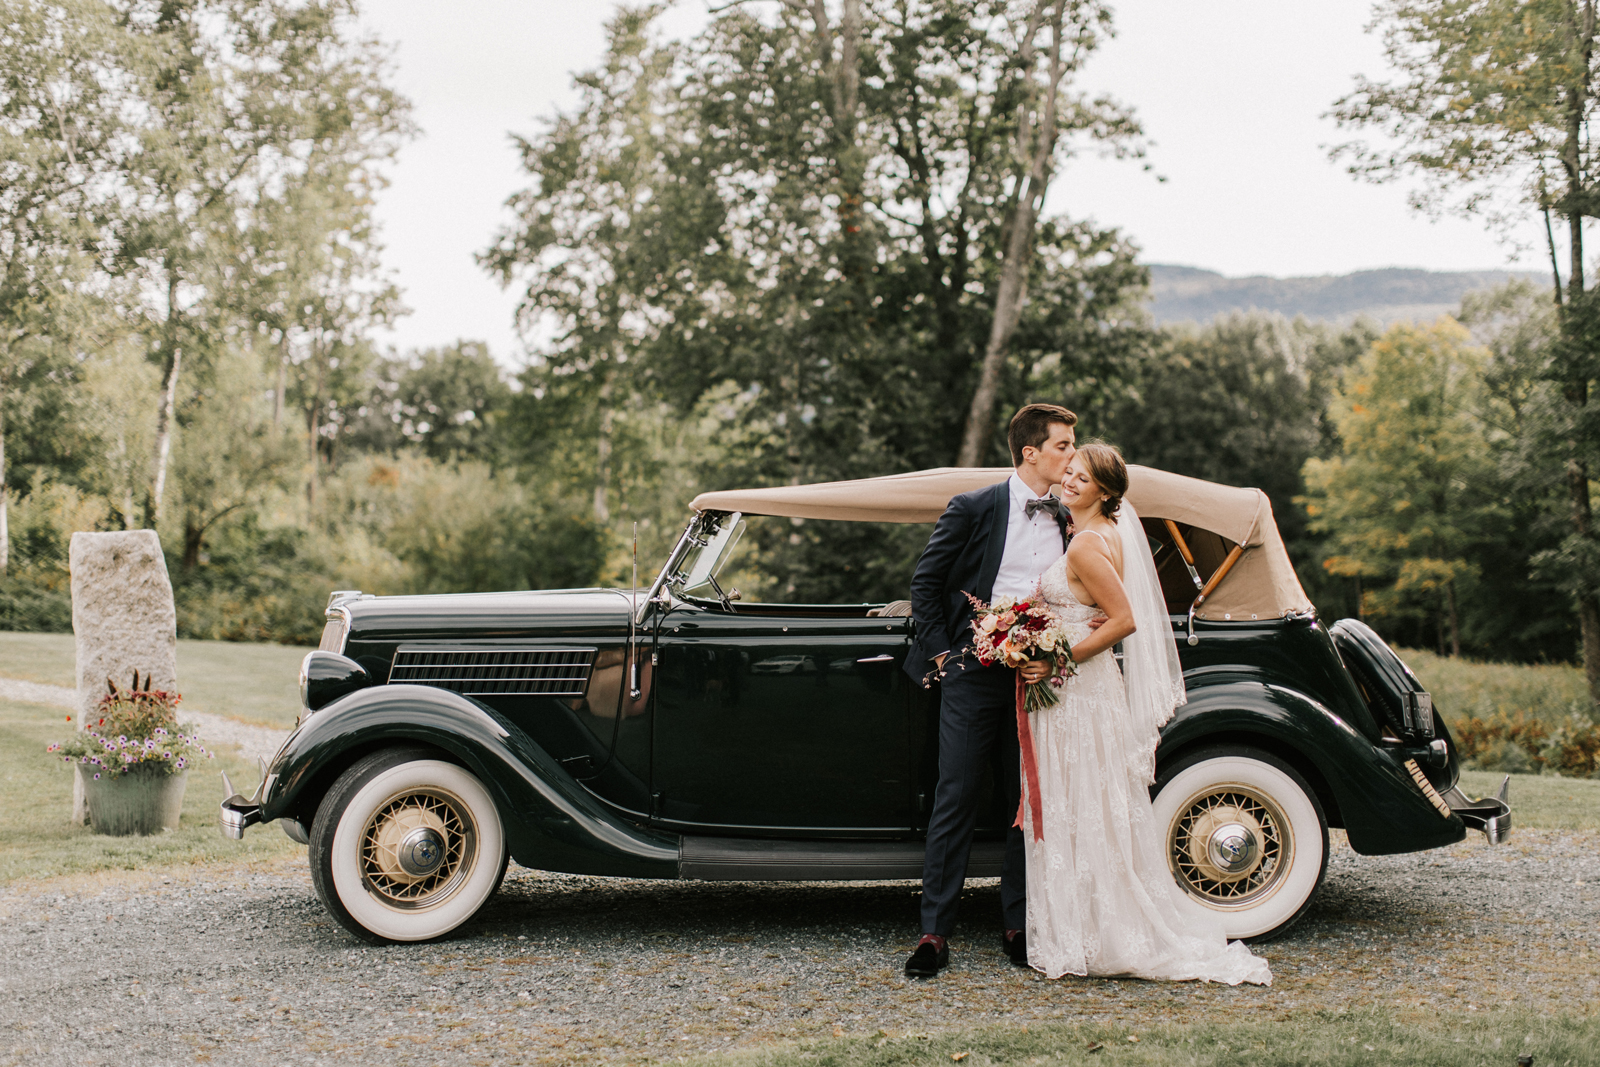 bride and groom standing next to 1936 Model A Ford vintage car